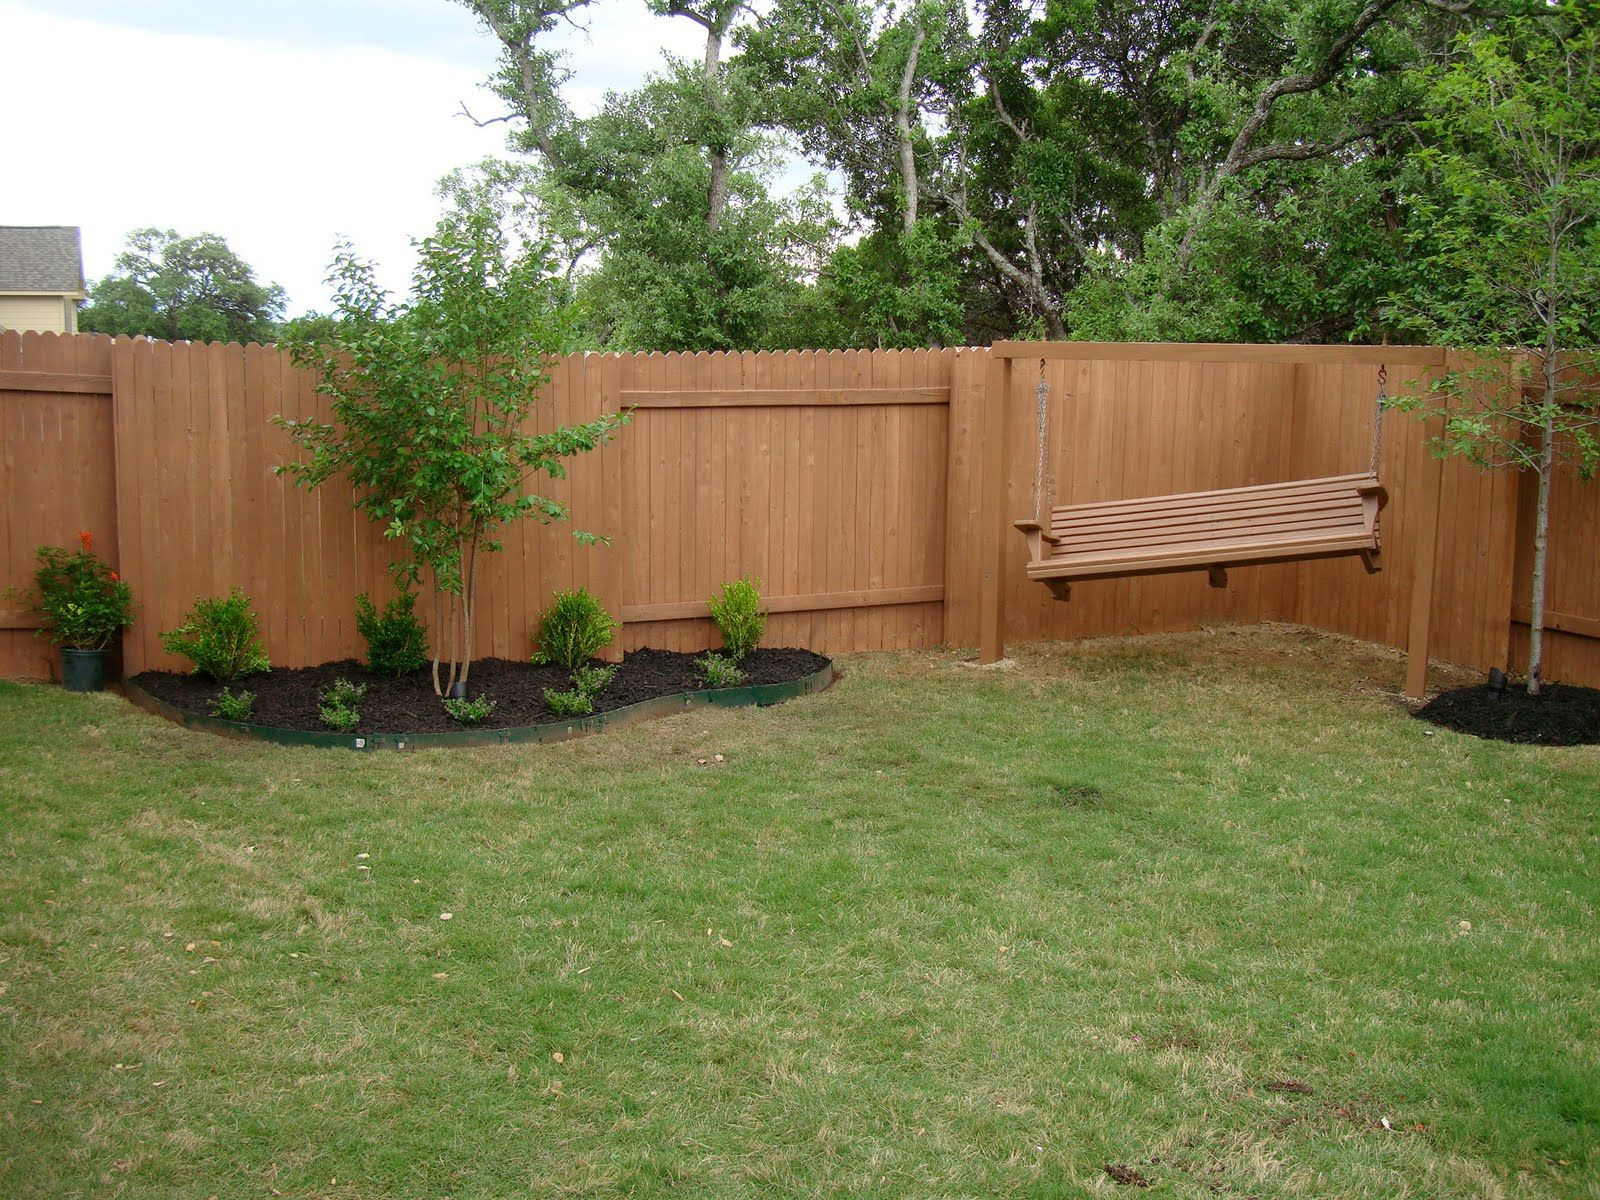 Small bakyards backyard design simple backyard design for Small backyard plans